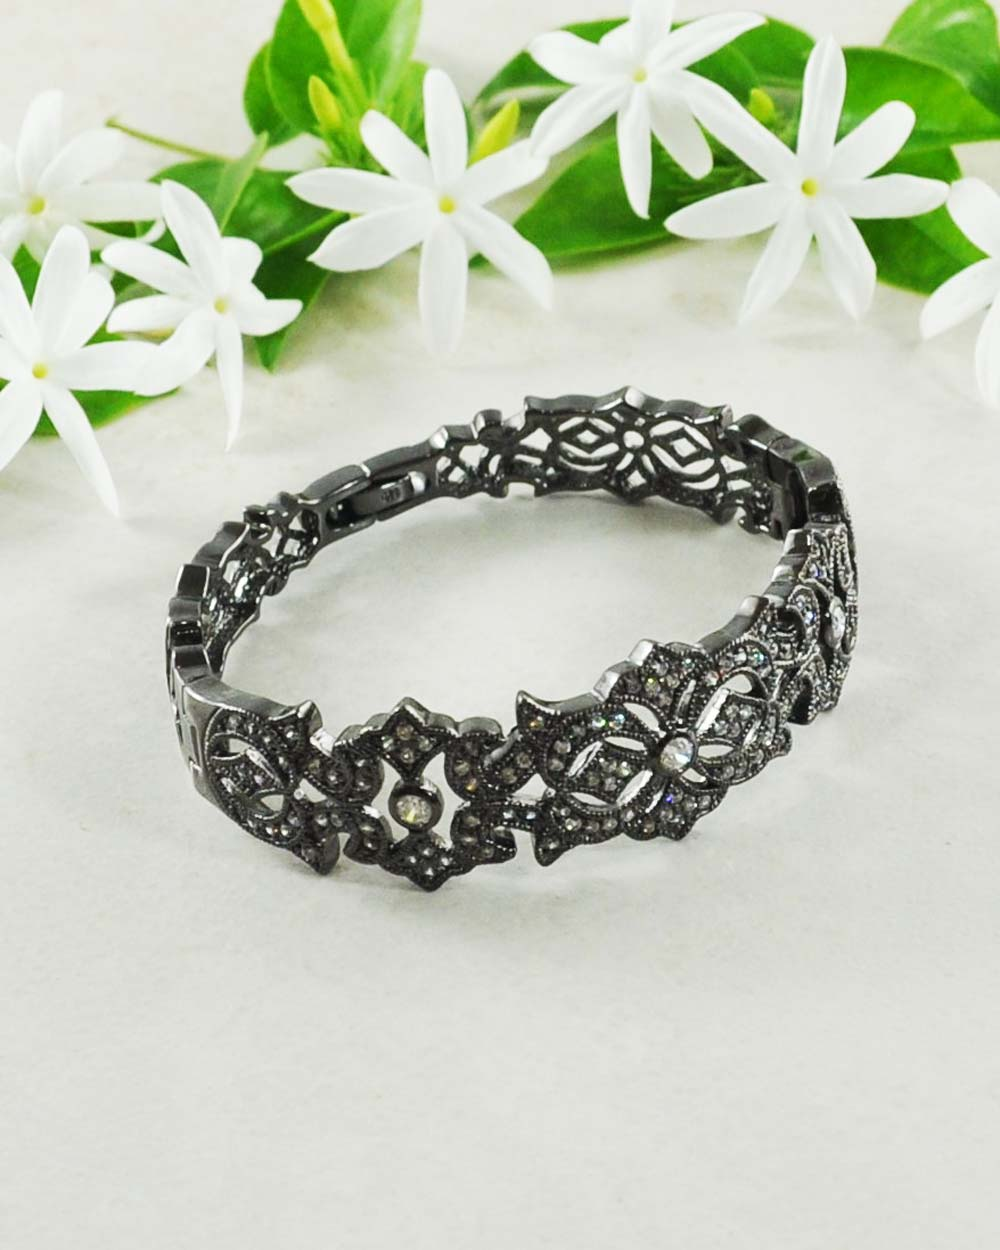 Starlight Brilliant CZ Bracelet in 925 Sterling Silver & Black Rhodium